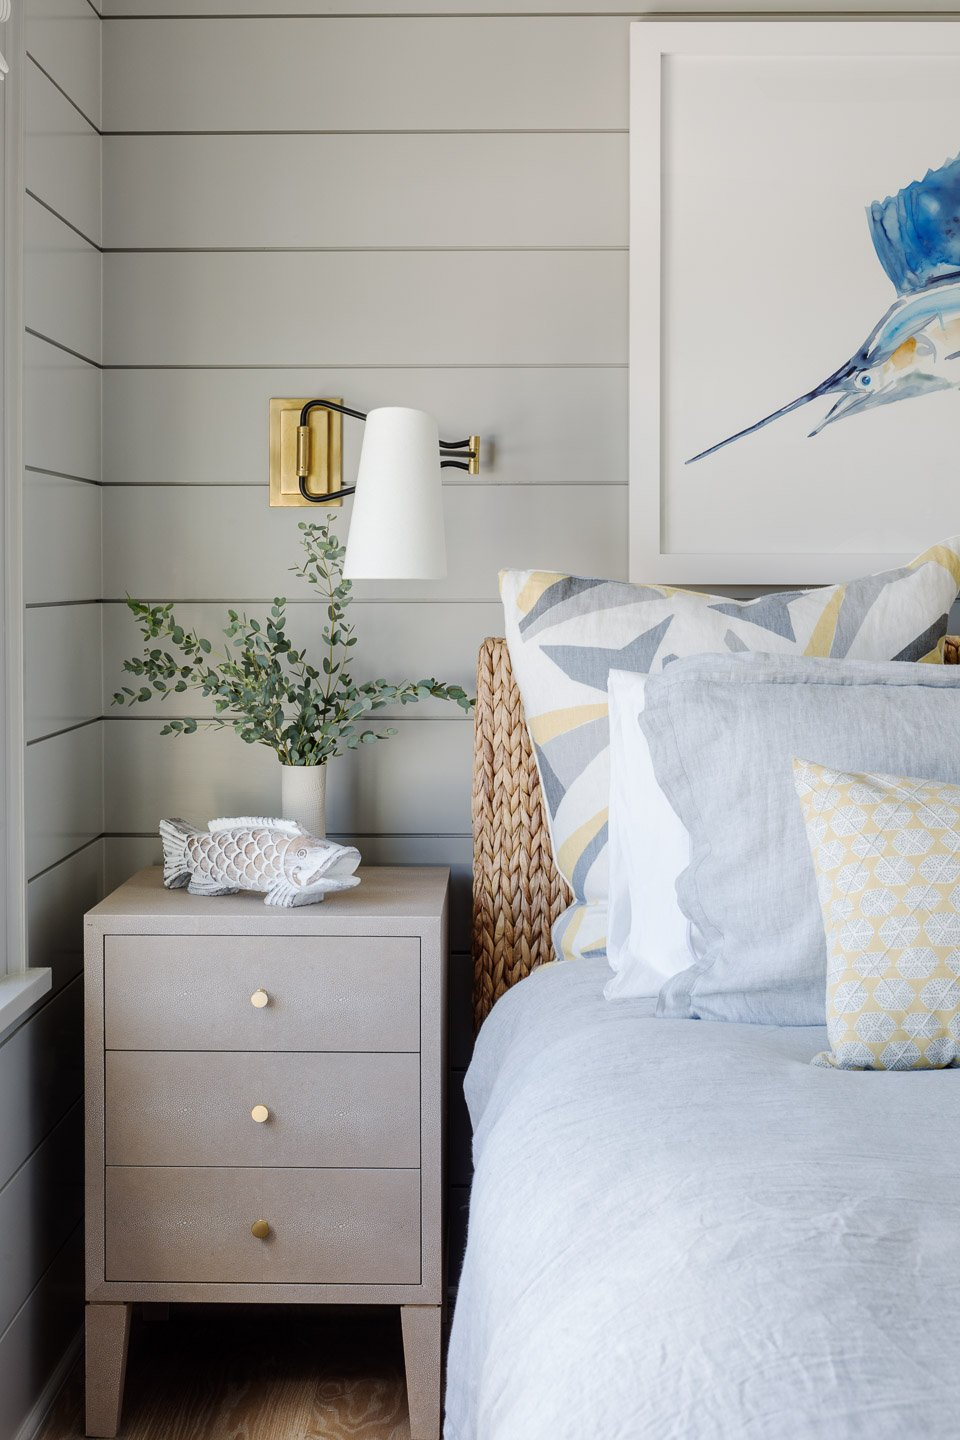 Blakely Interior Design | The Jersey Palm Project | Son's Room